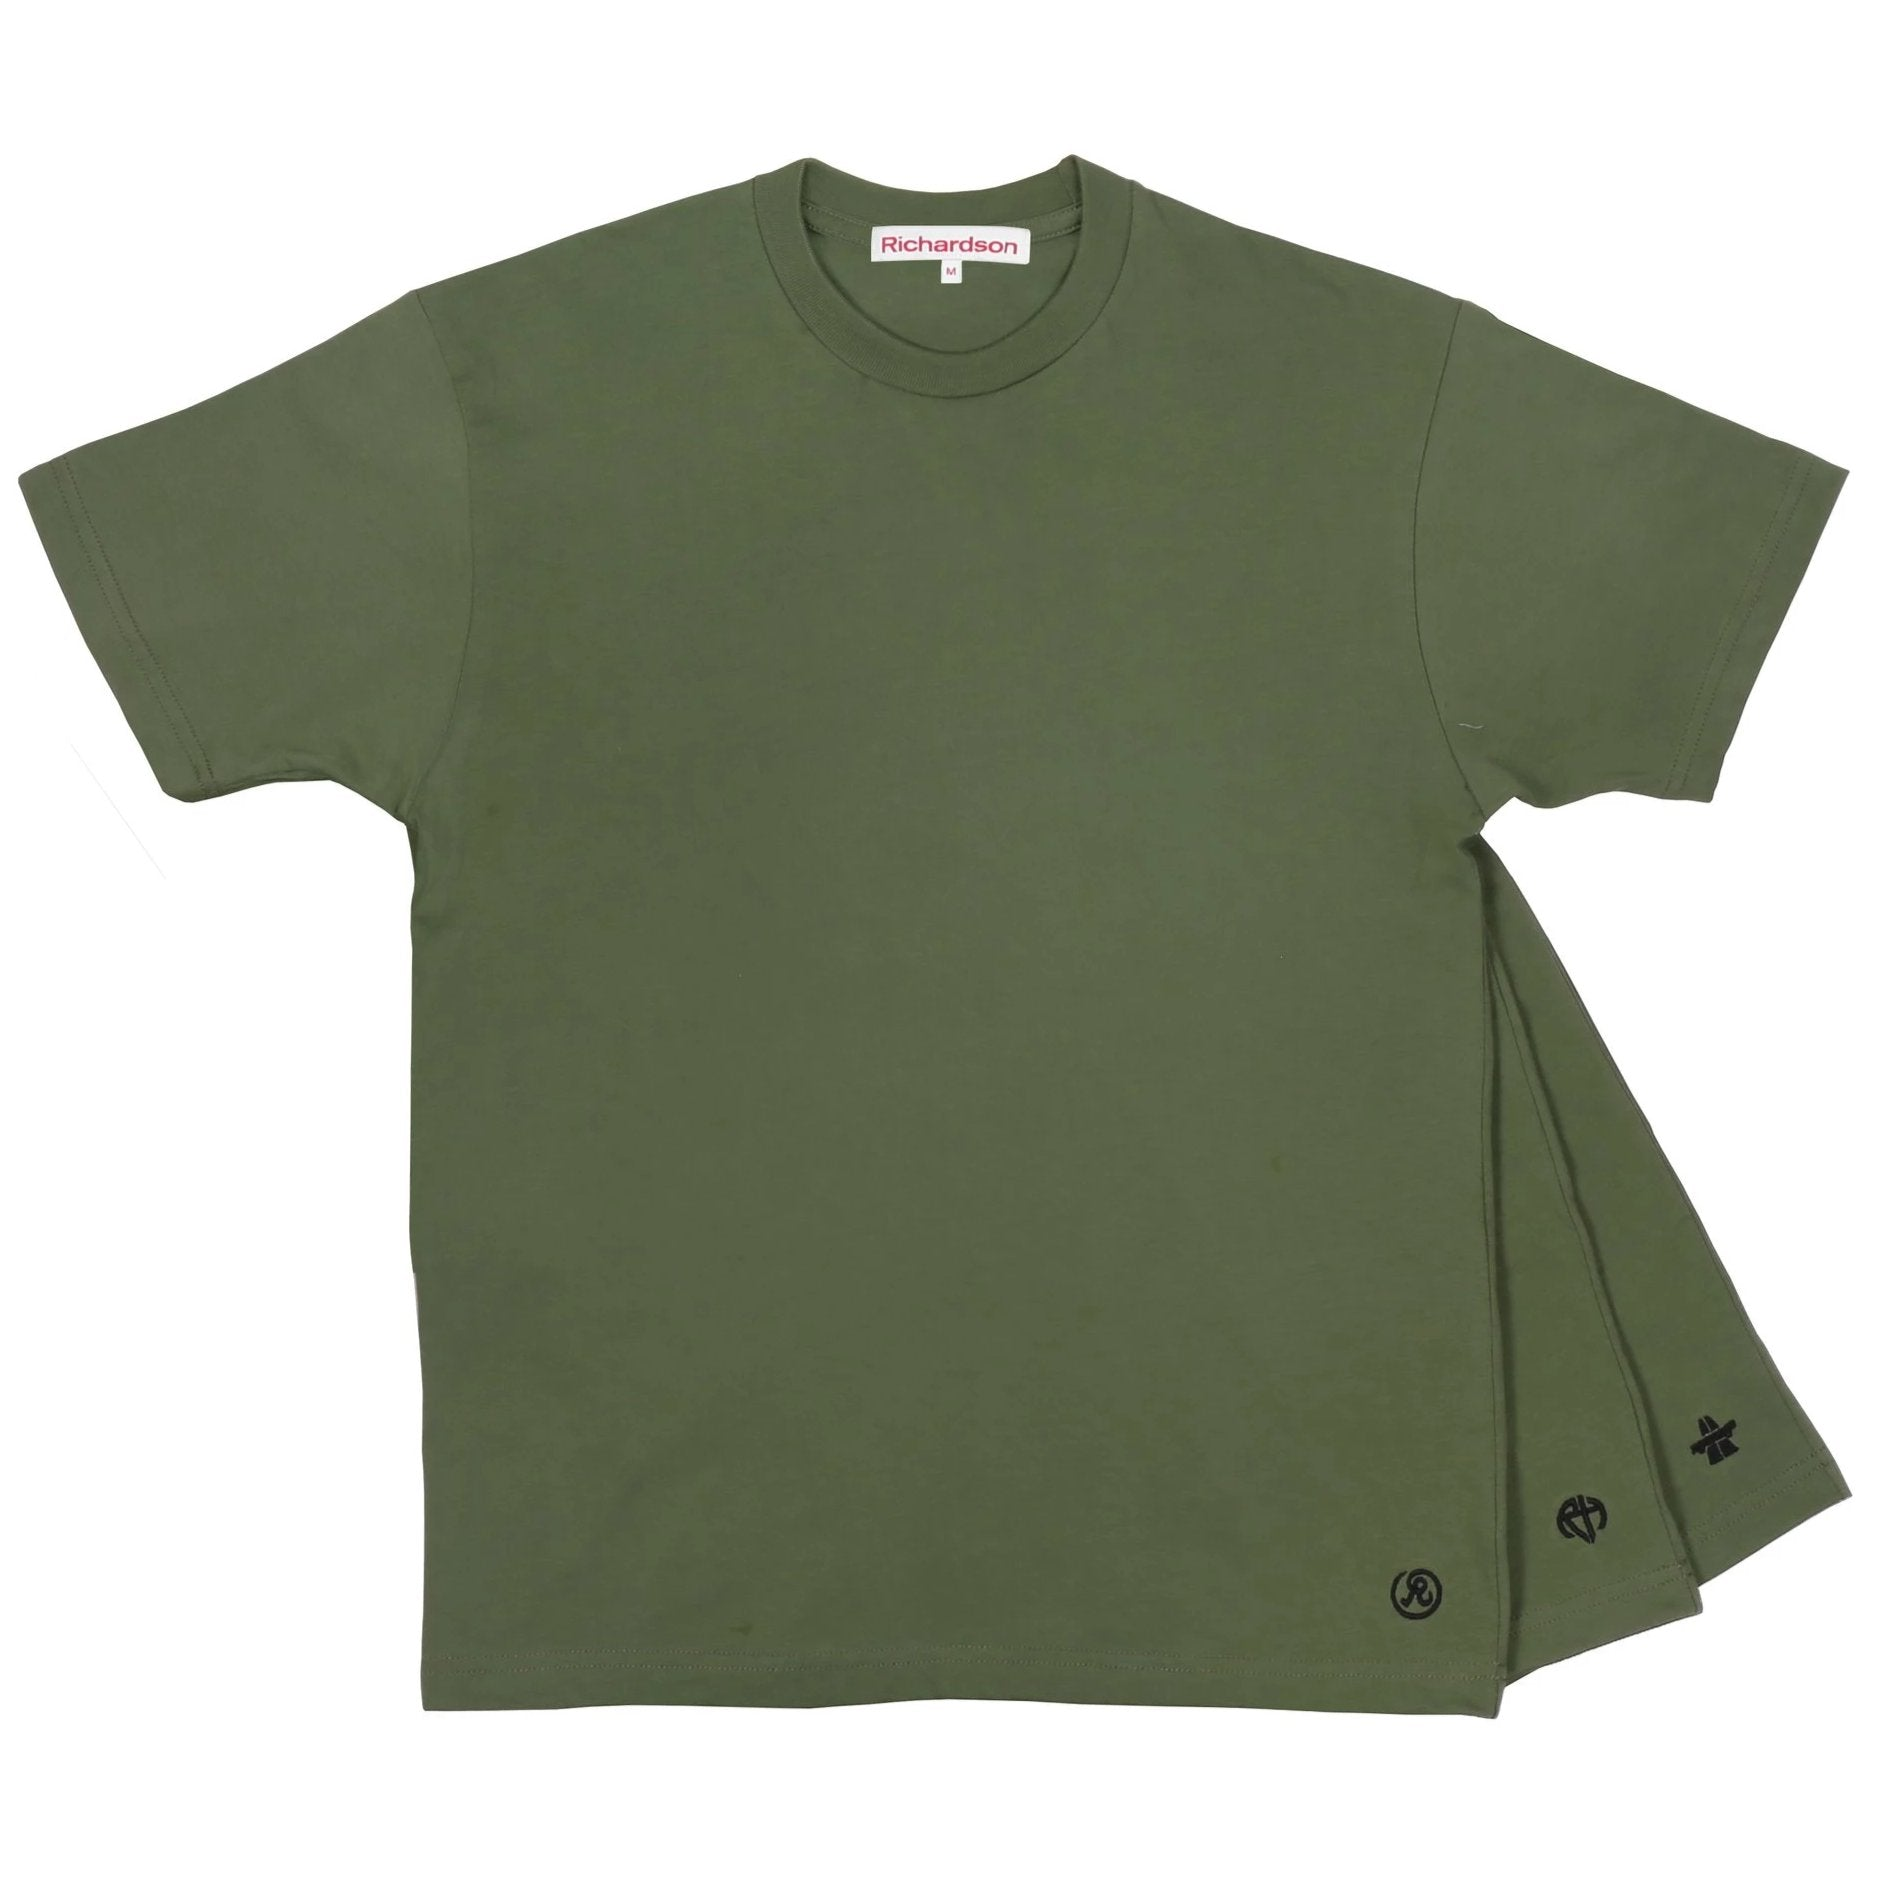 3-Pack Short Sleeve Shirts (OD Green)